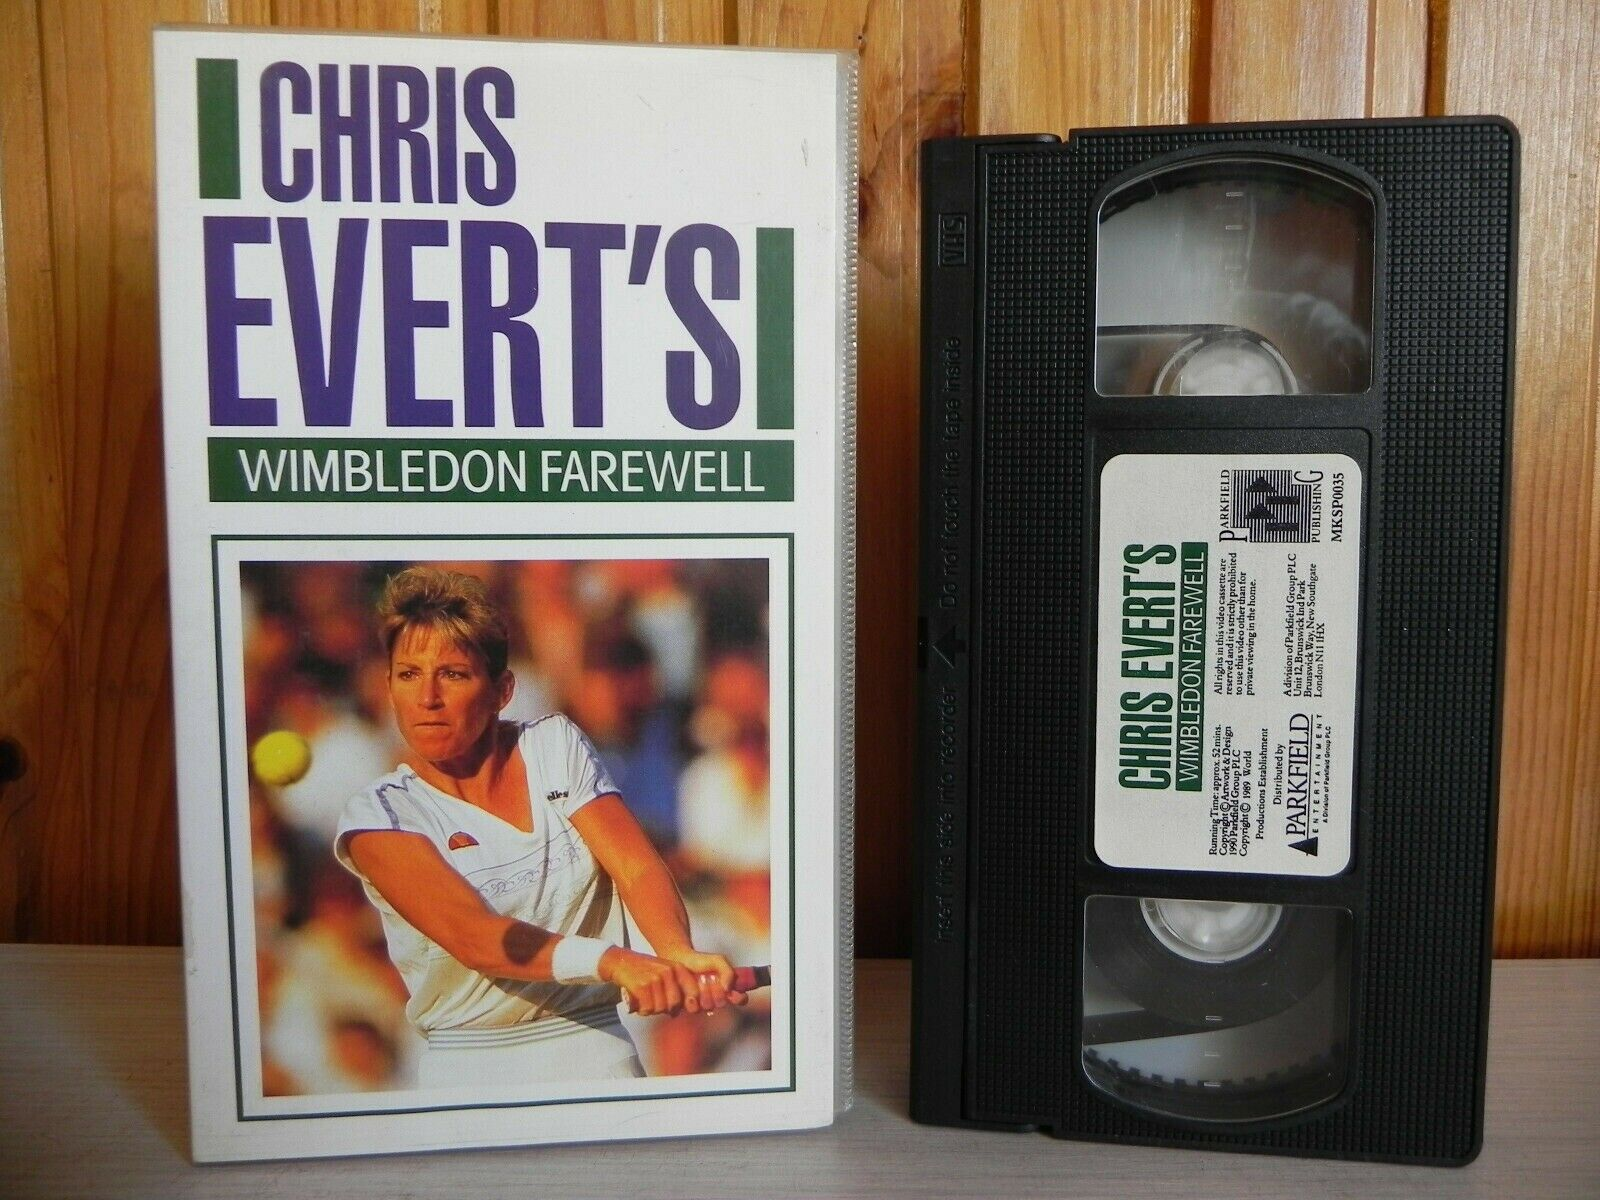 Chris, Farewell, Herself, Interviews, No, PAL, Player, Sports, Tennis, The, United Kingdom, VHS, Wimbledon, With